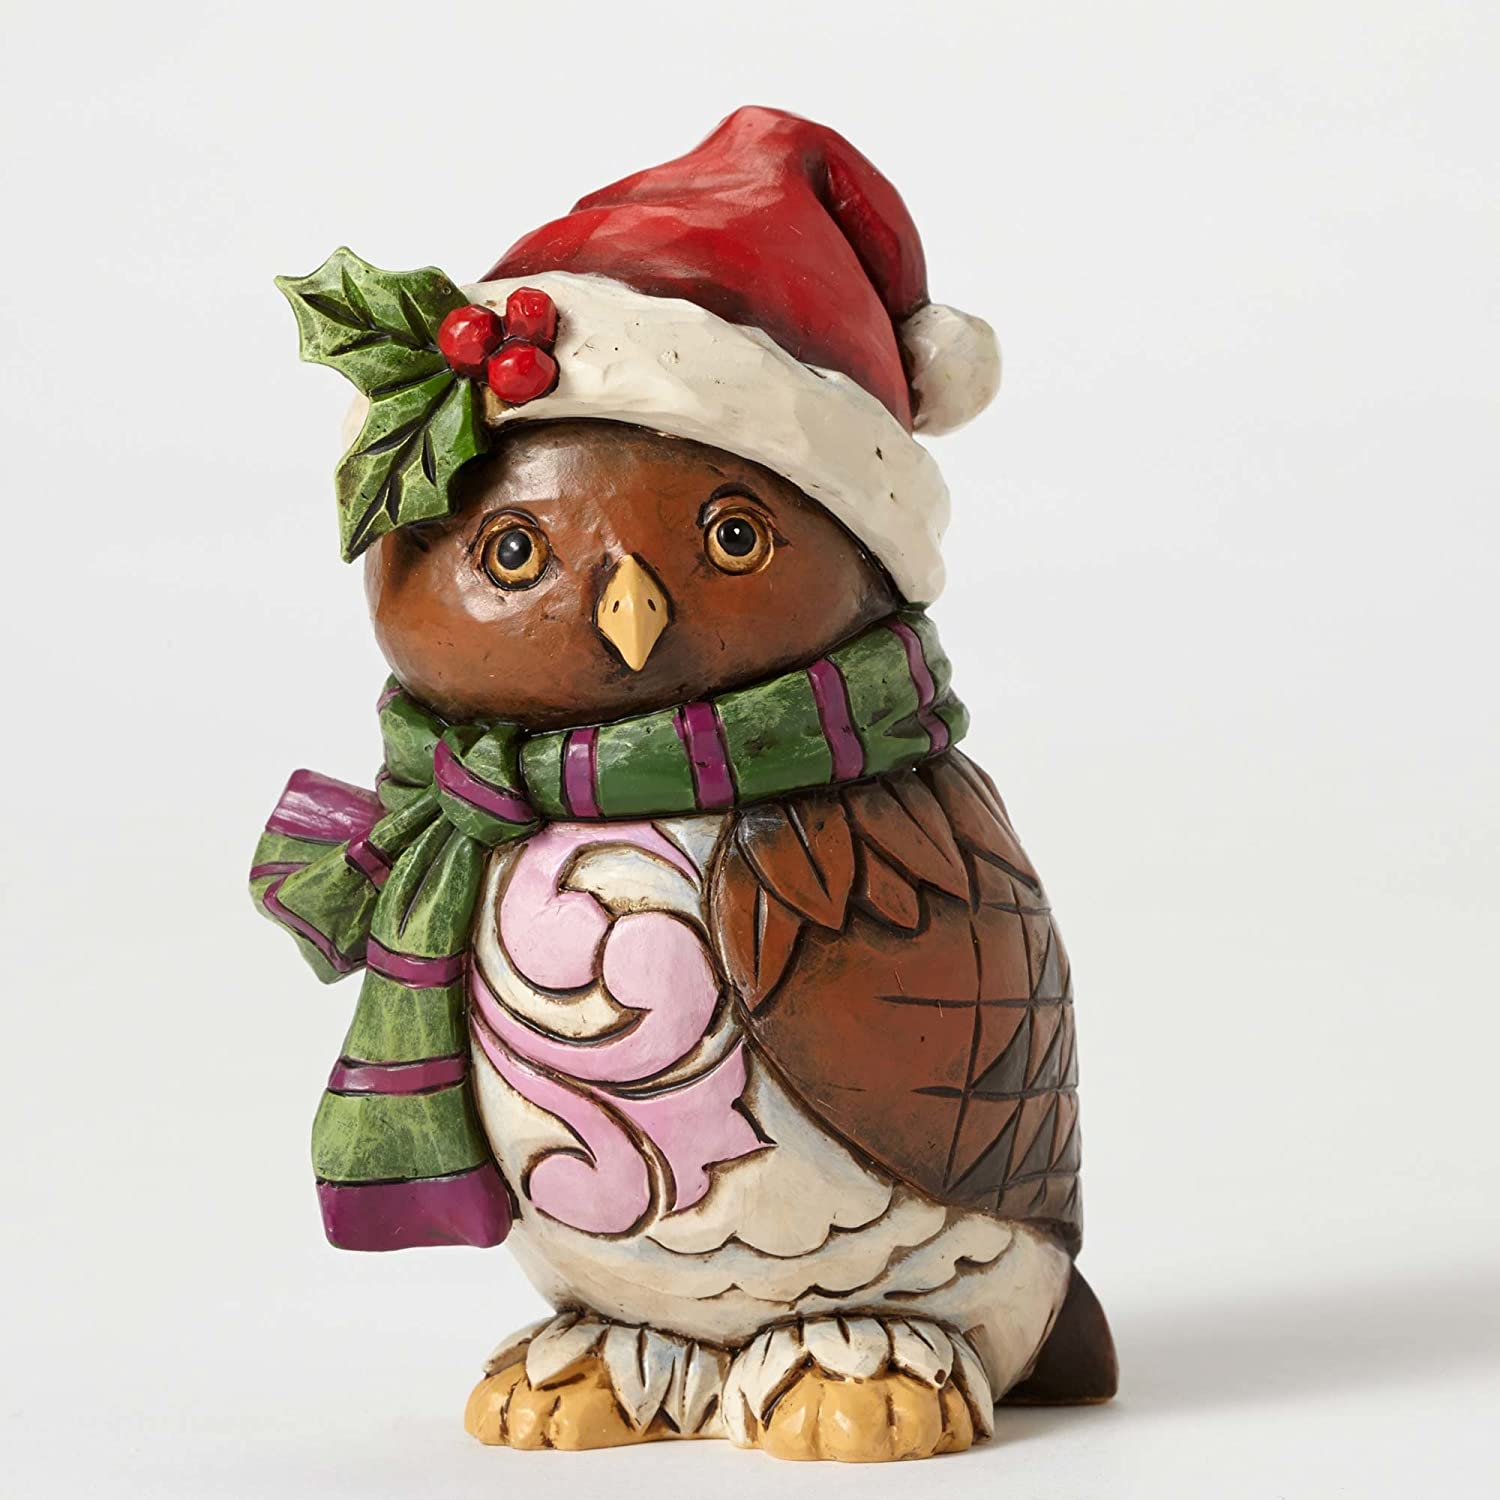 """Jim Some 2021 model reservation Shore Heartwood Creek """"Owl Be Stone 4. Home"""" Resin Figurine"""